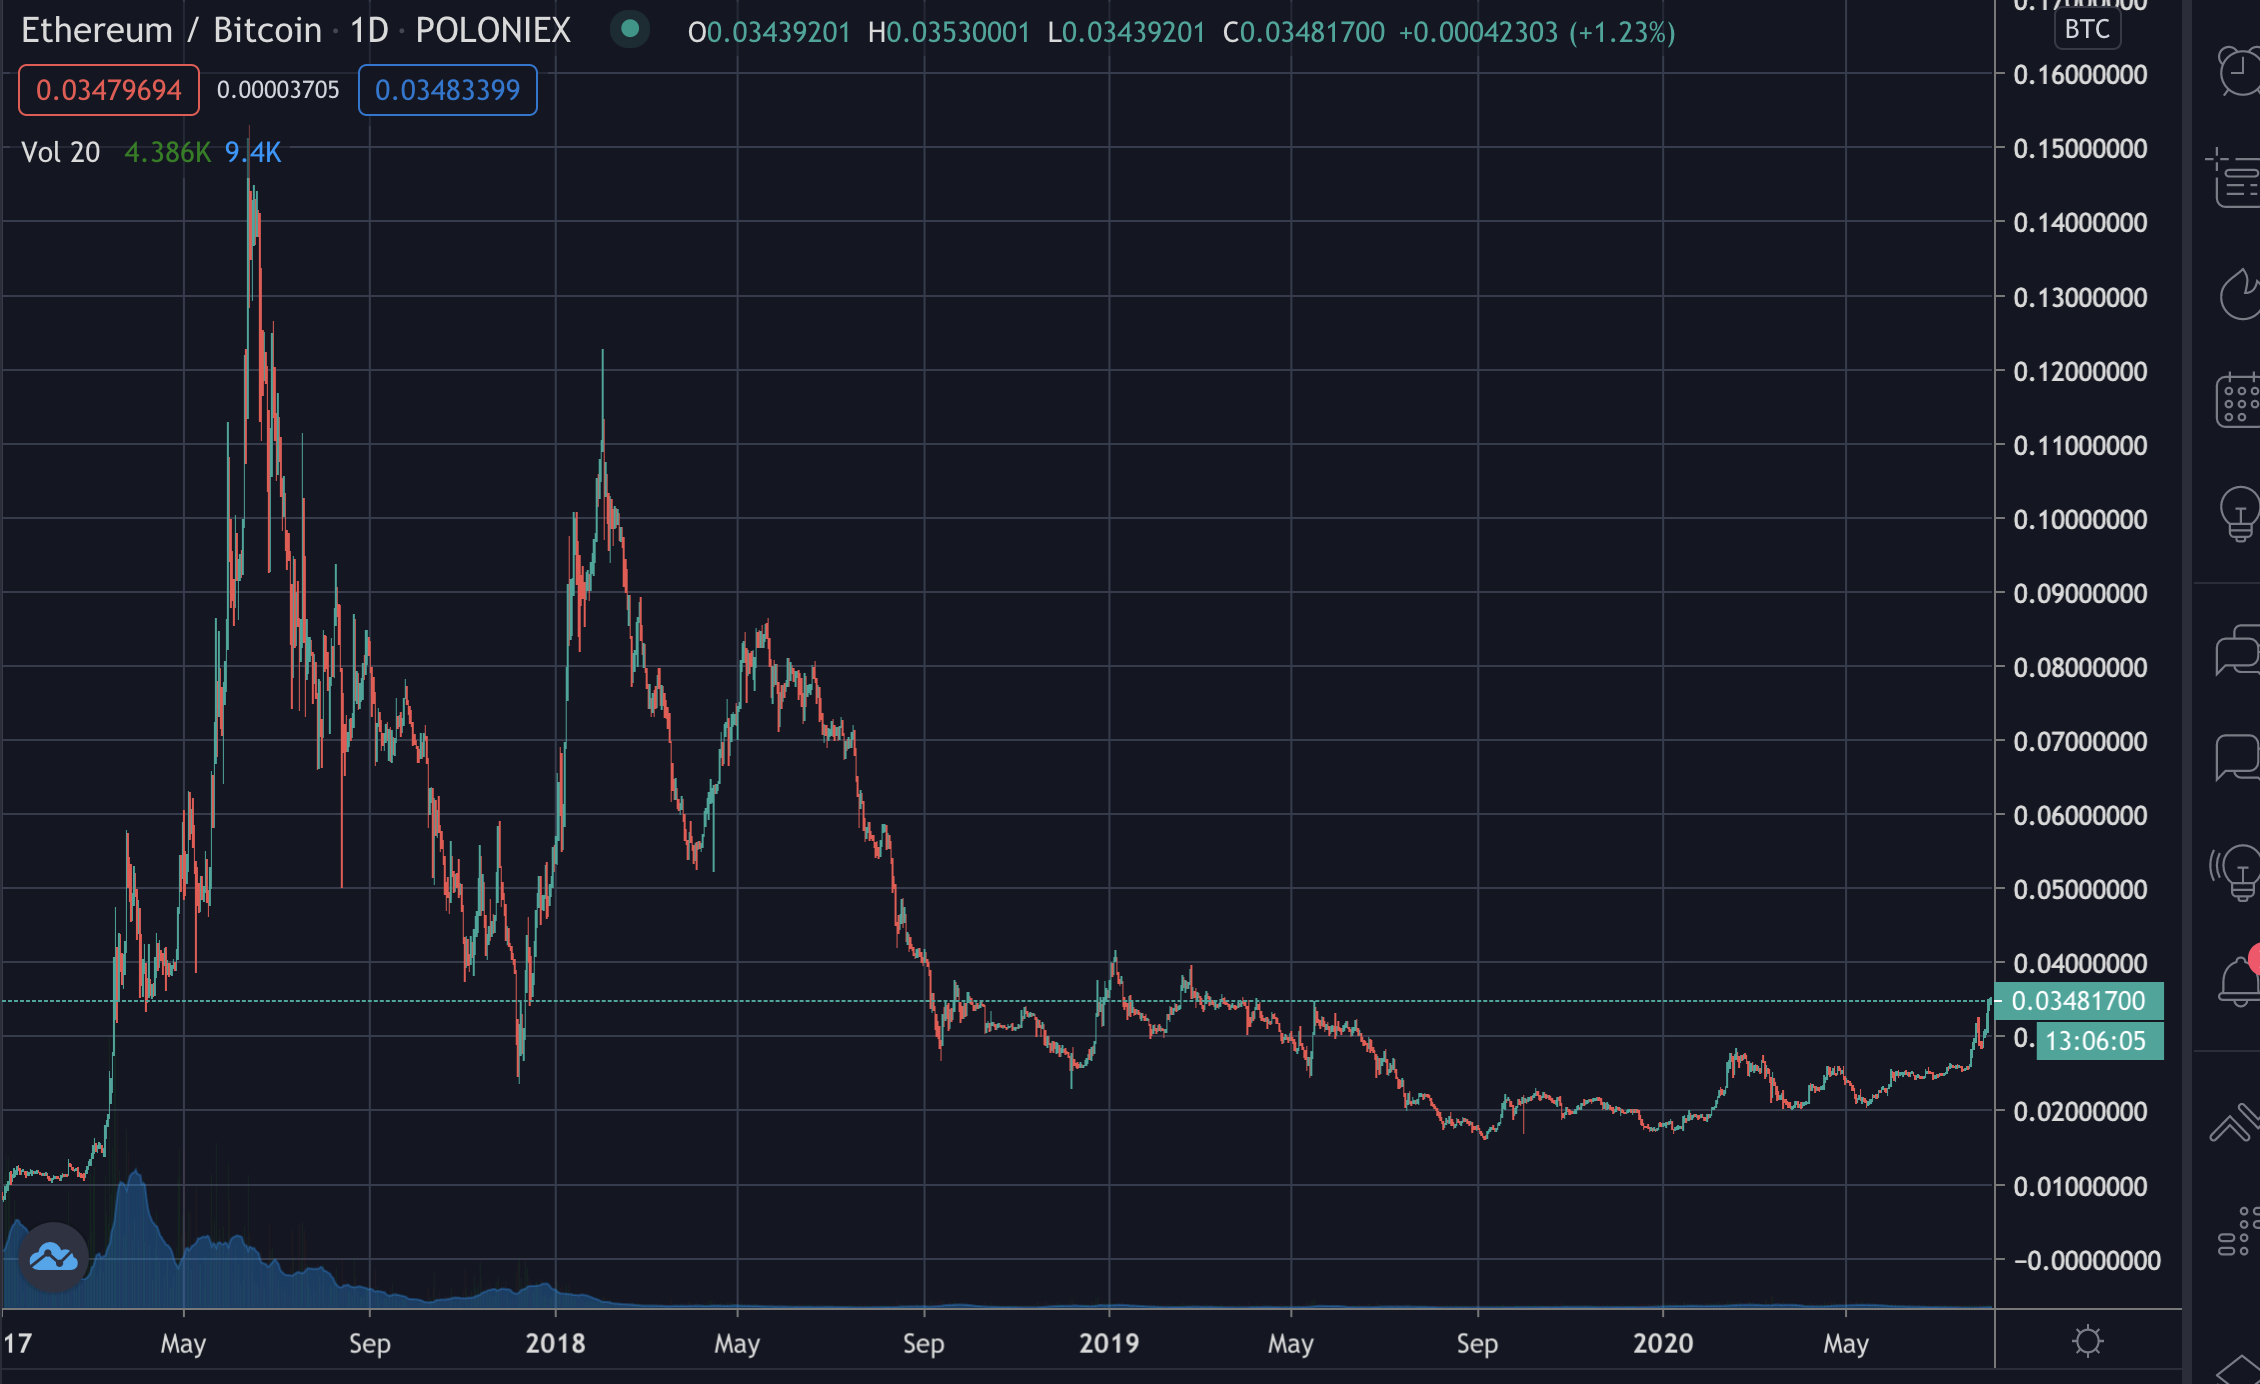 Ethereum's price against bitcoin since 2017, August 2020